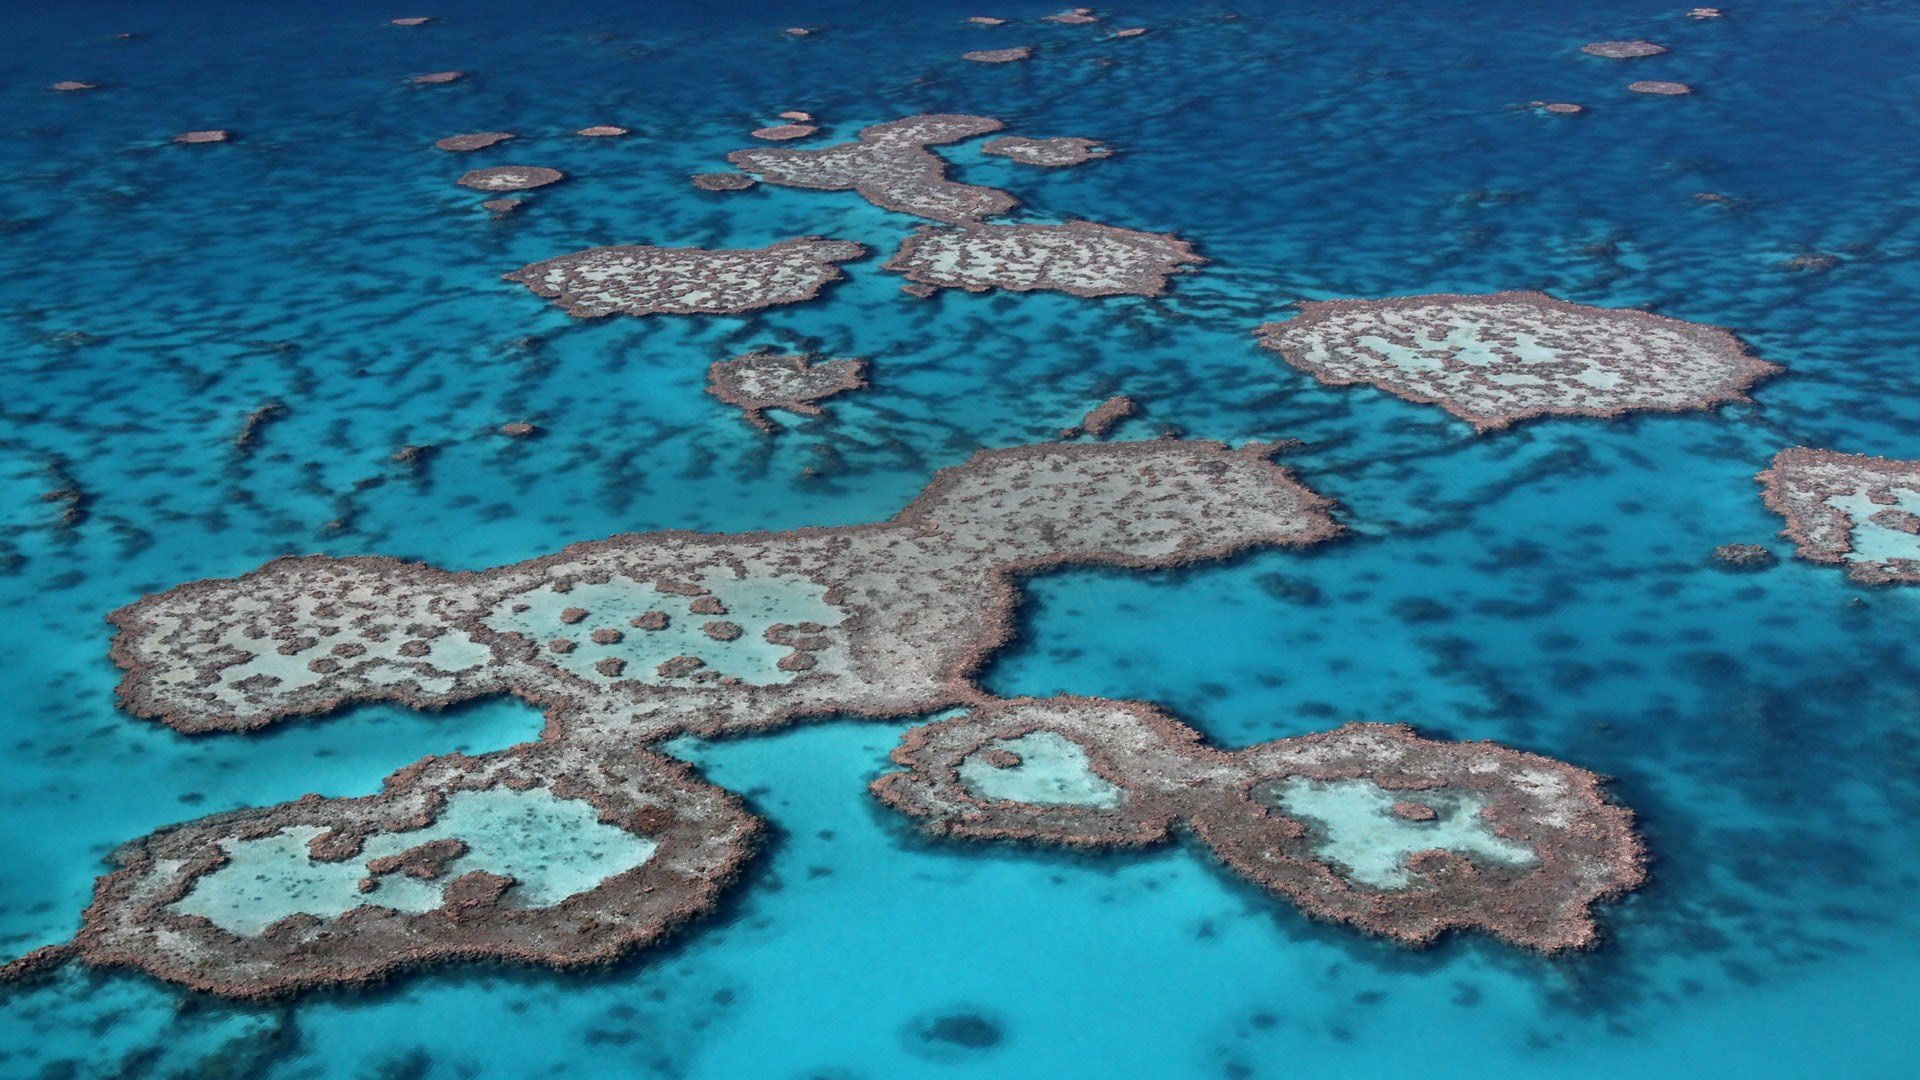 Aerial view of the Great Barrier Reef near Queensland, Australia